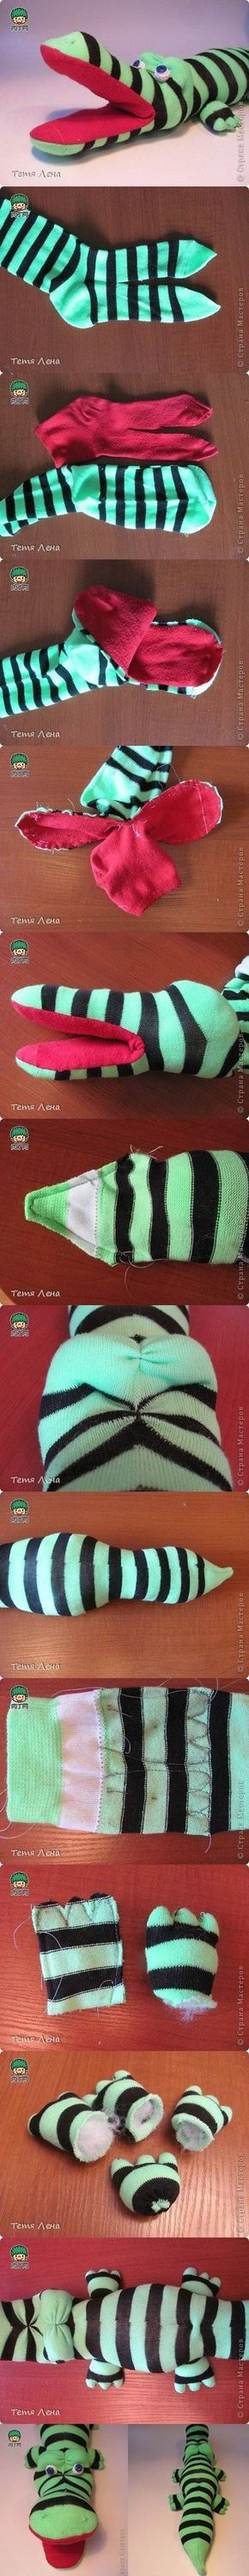 DIY Sock Crocodile Stuffed Animal DIY Projects /...